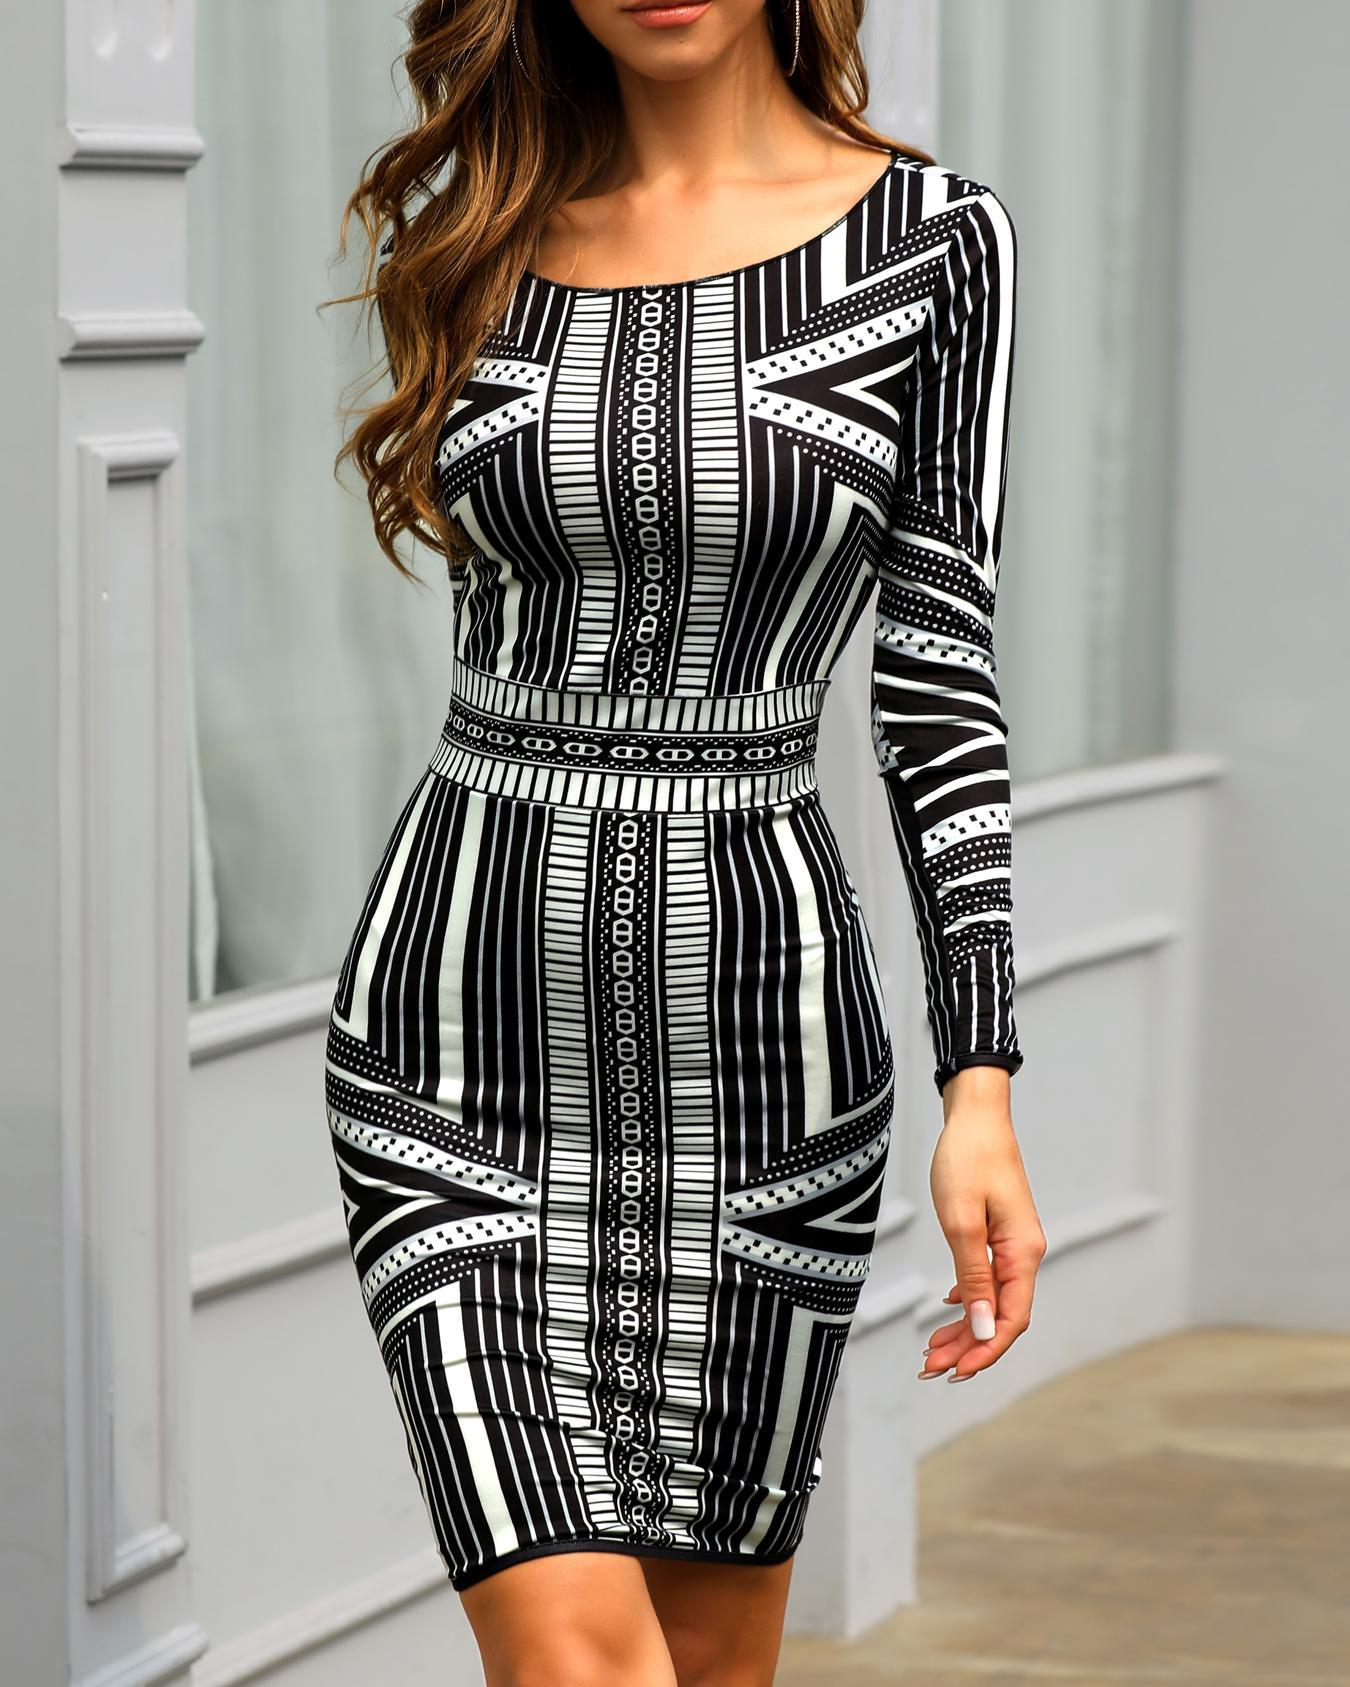 chicme / Long Sleeve Print Bodycon Dress